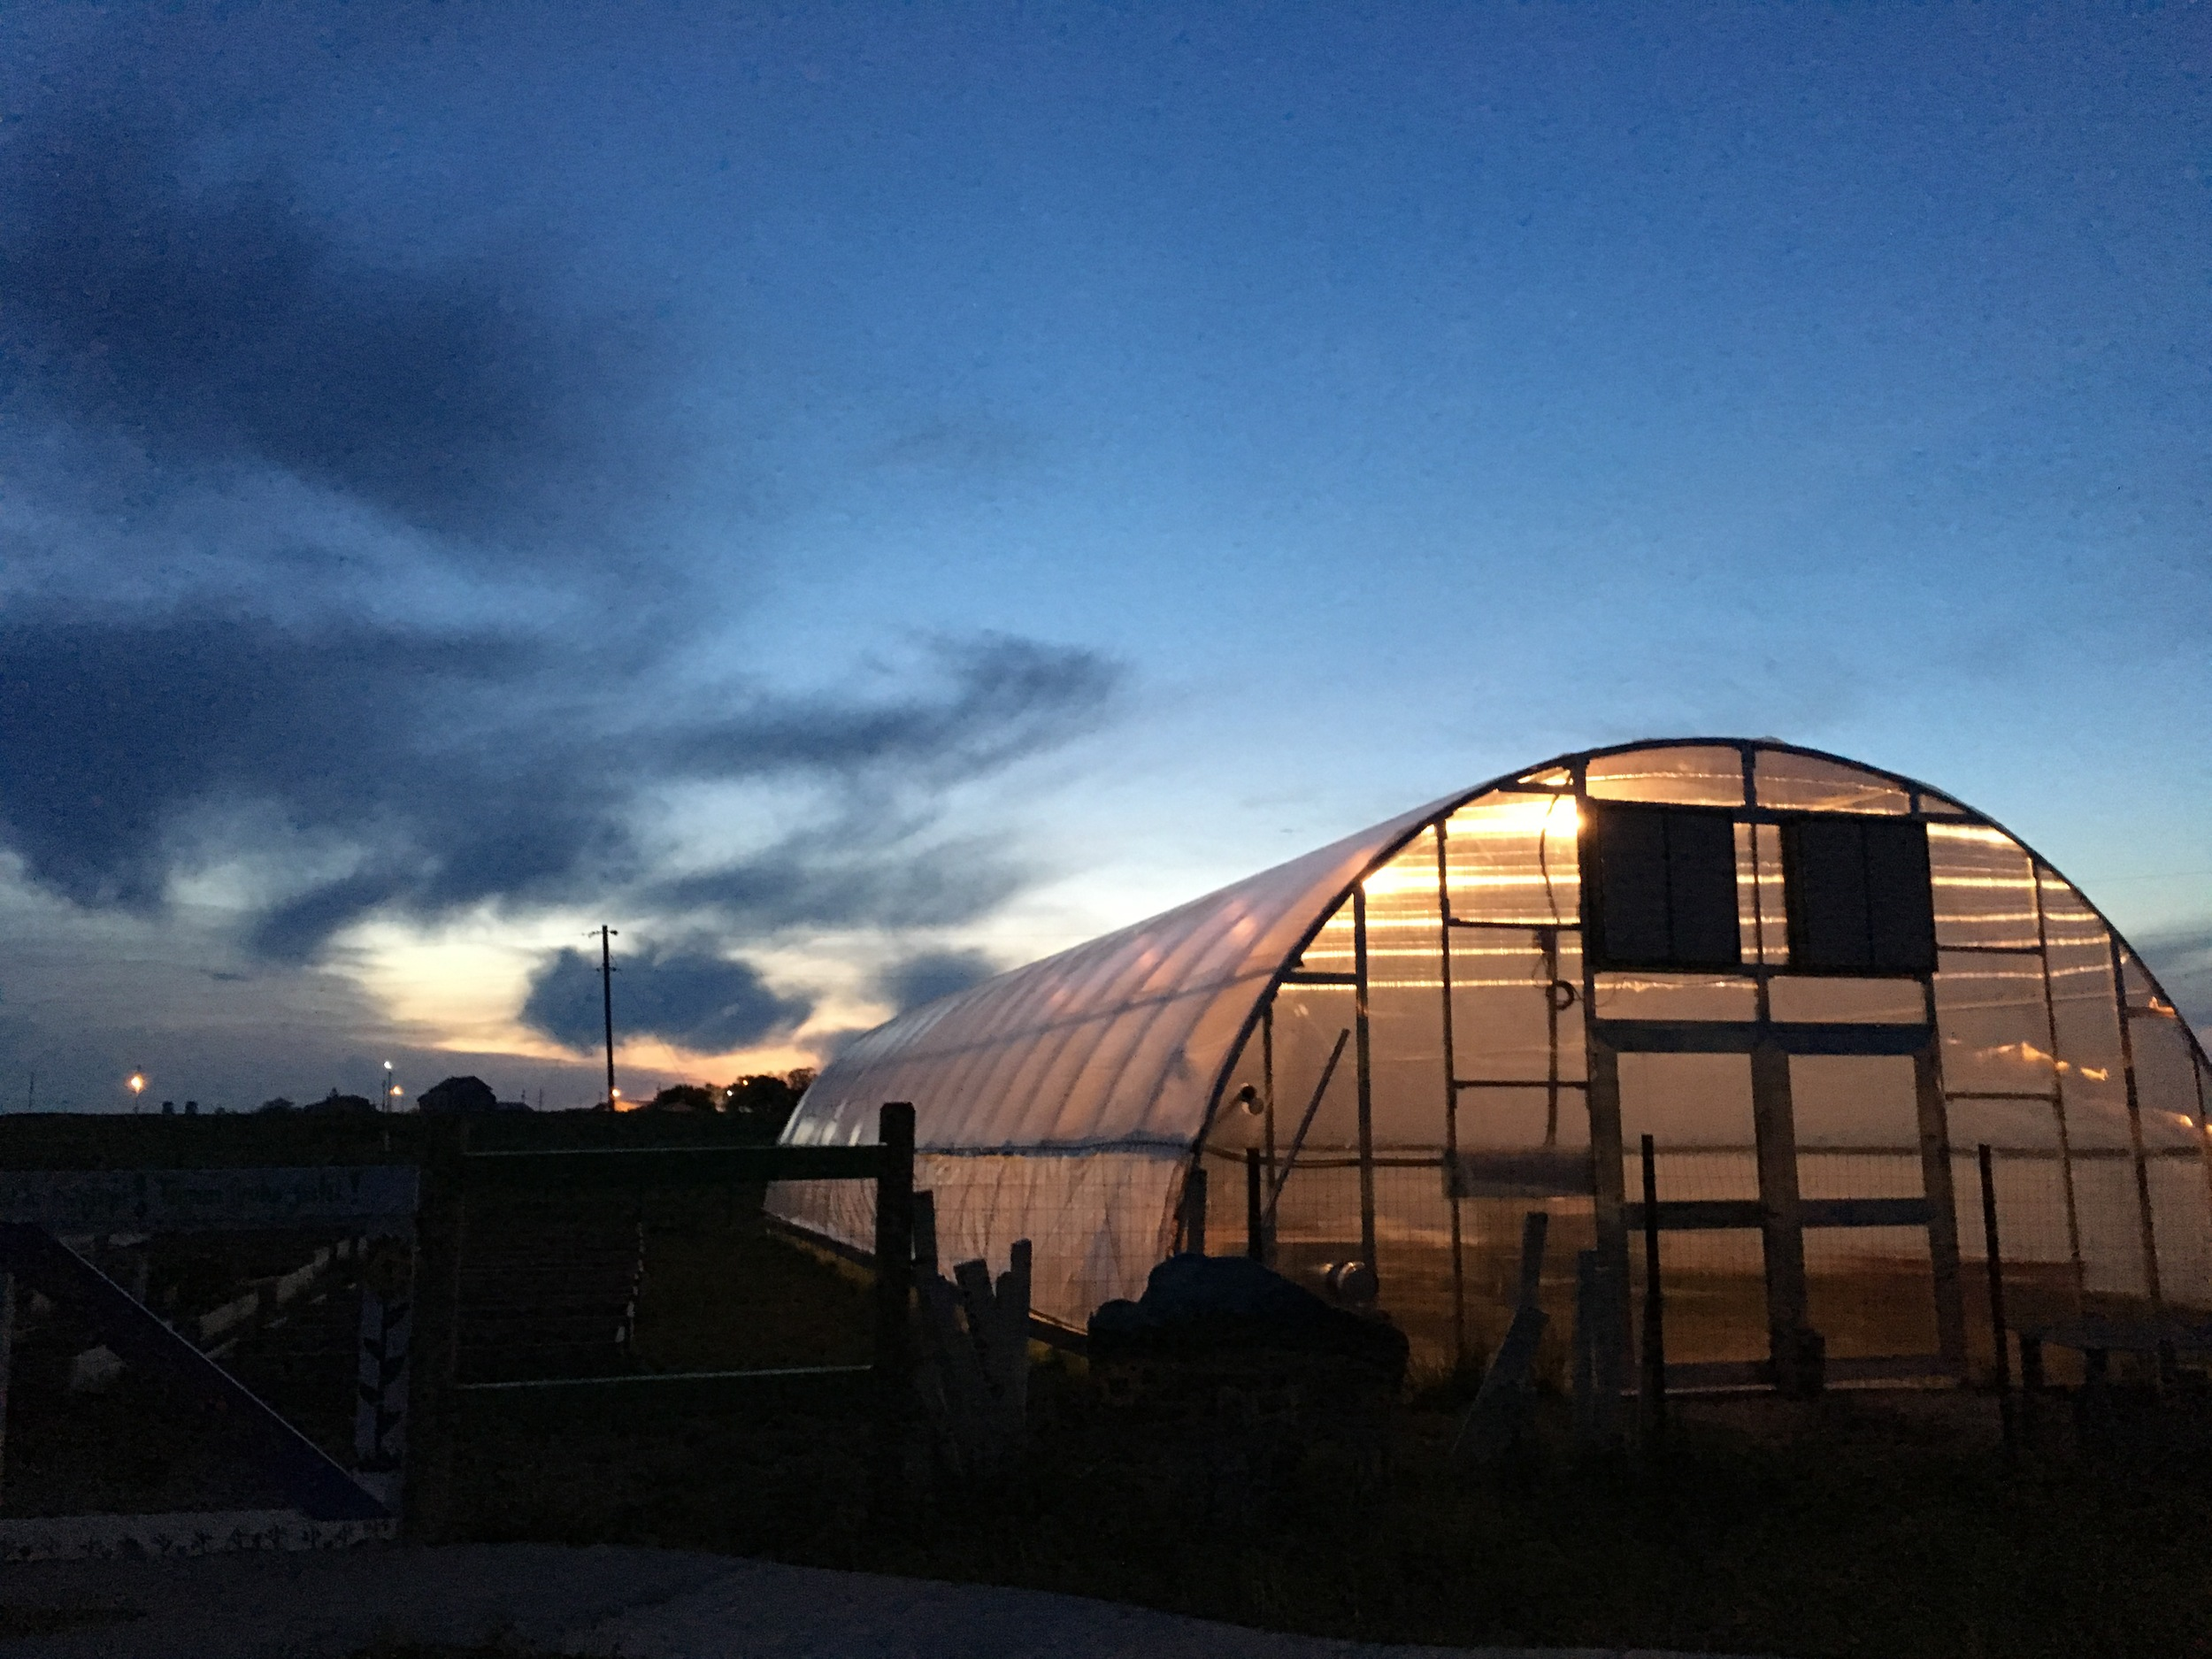 We've got power! The greenhouse is now electrified, which means lights, heat, and ventilation for a longer growing season! (A. Gross, May 2016)